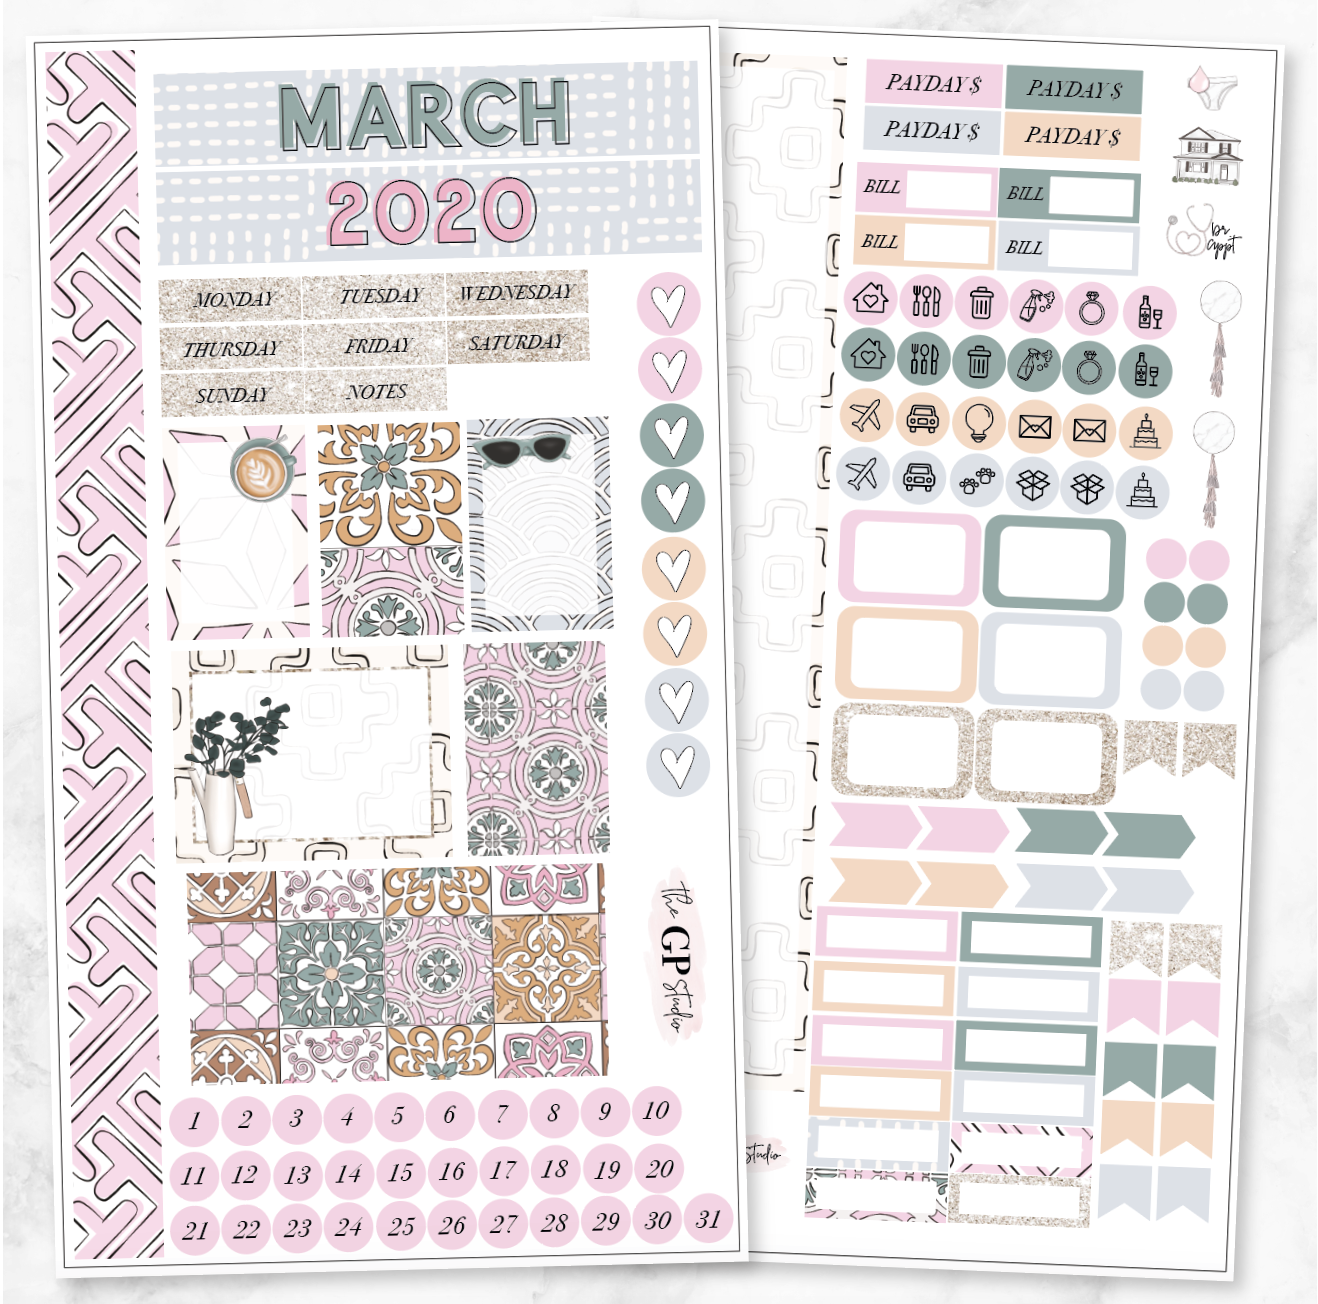 MARCH 2020 MONTHLY VIEW Personal/TN Size Stickers-The GP Studio